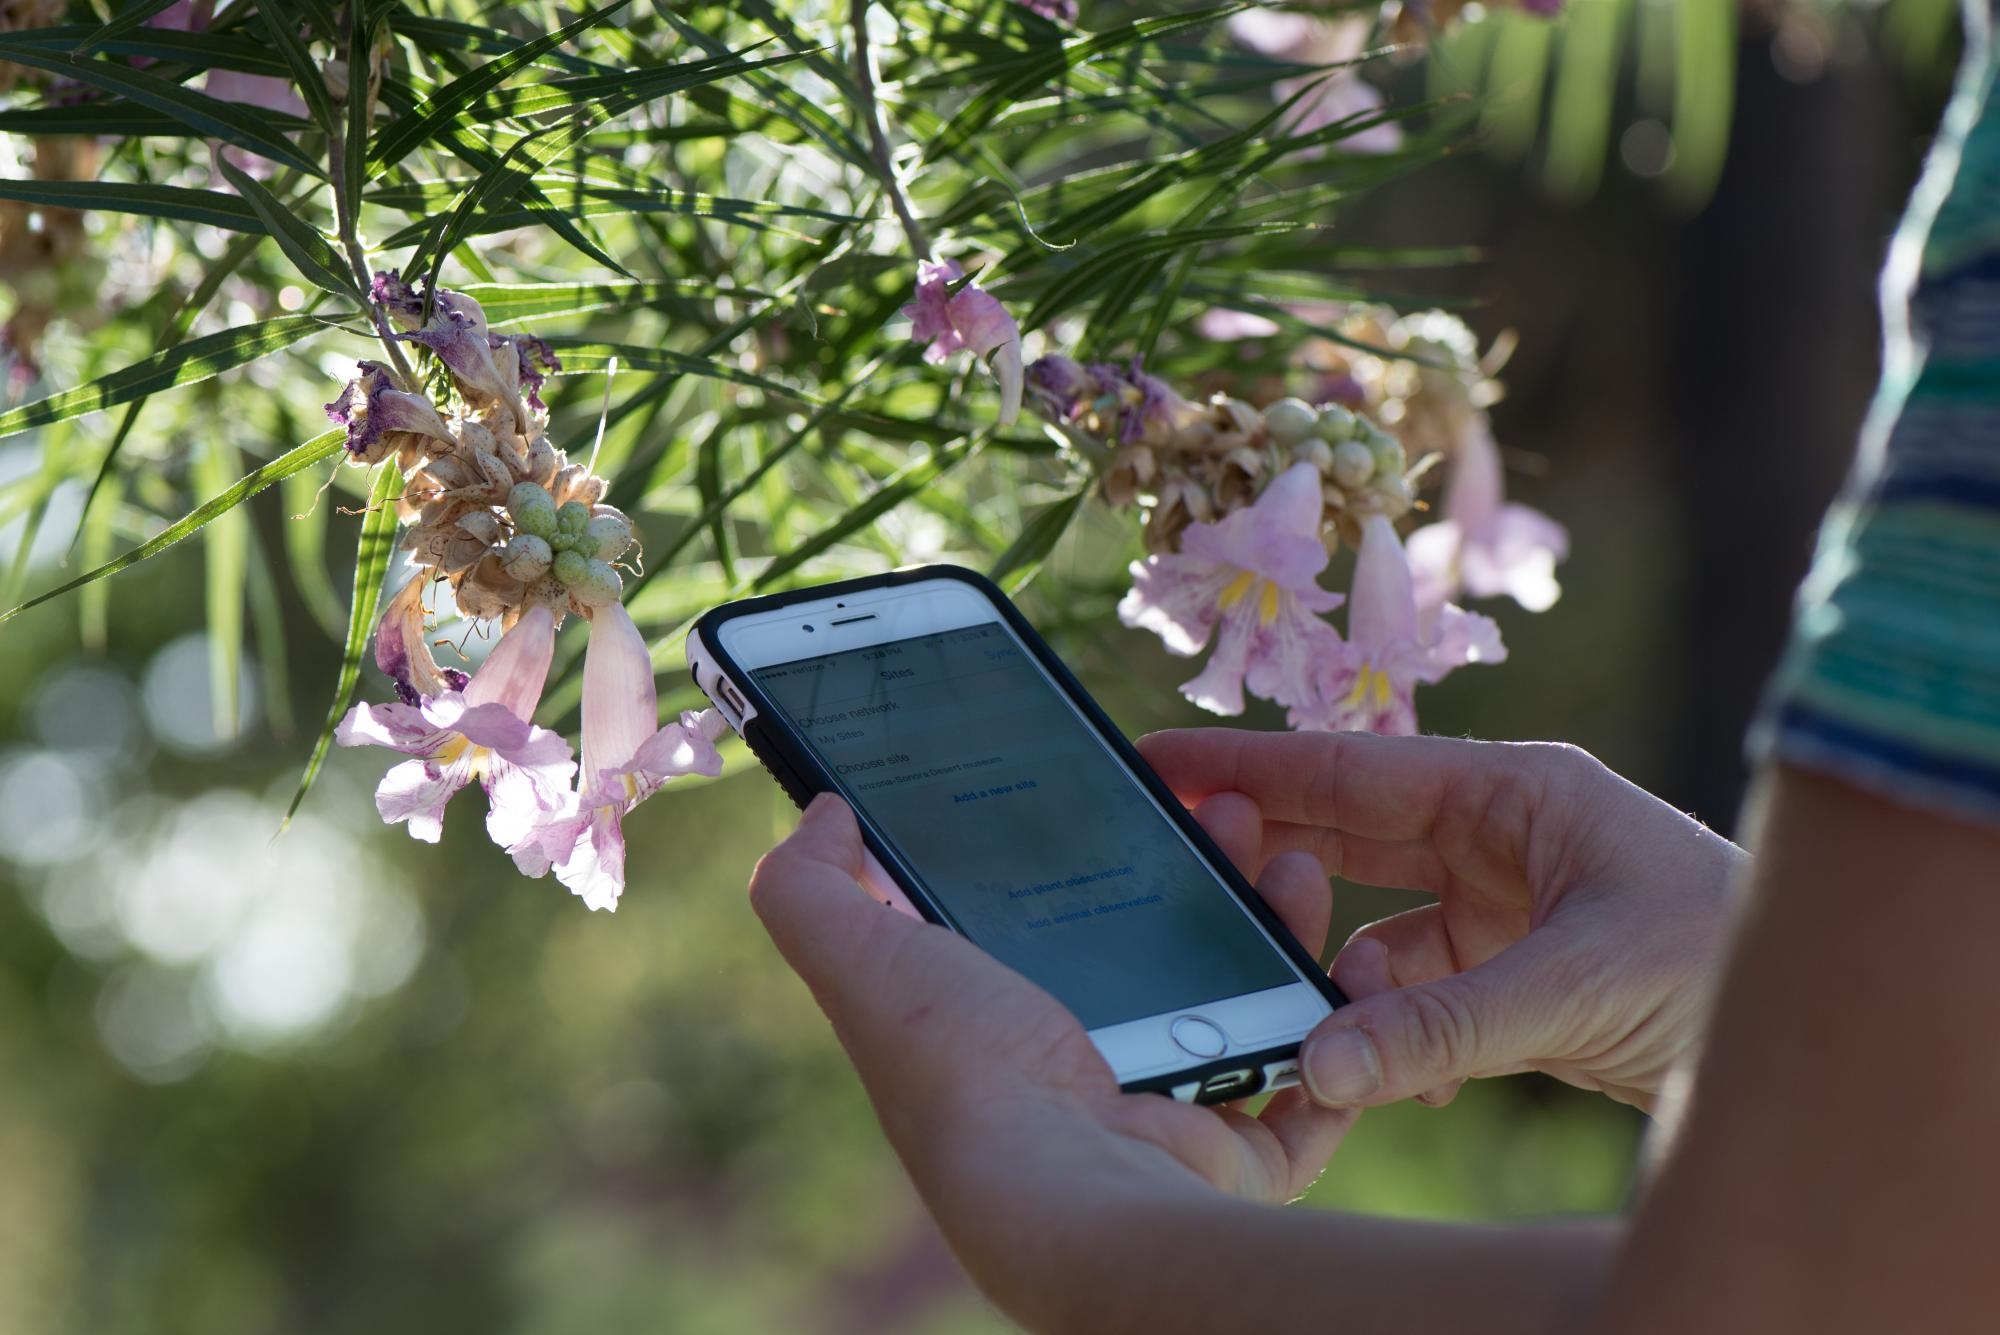 The Nature's Notebook app makes submitting data to the national database easy.